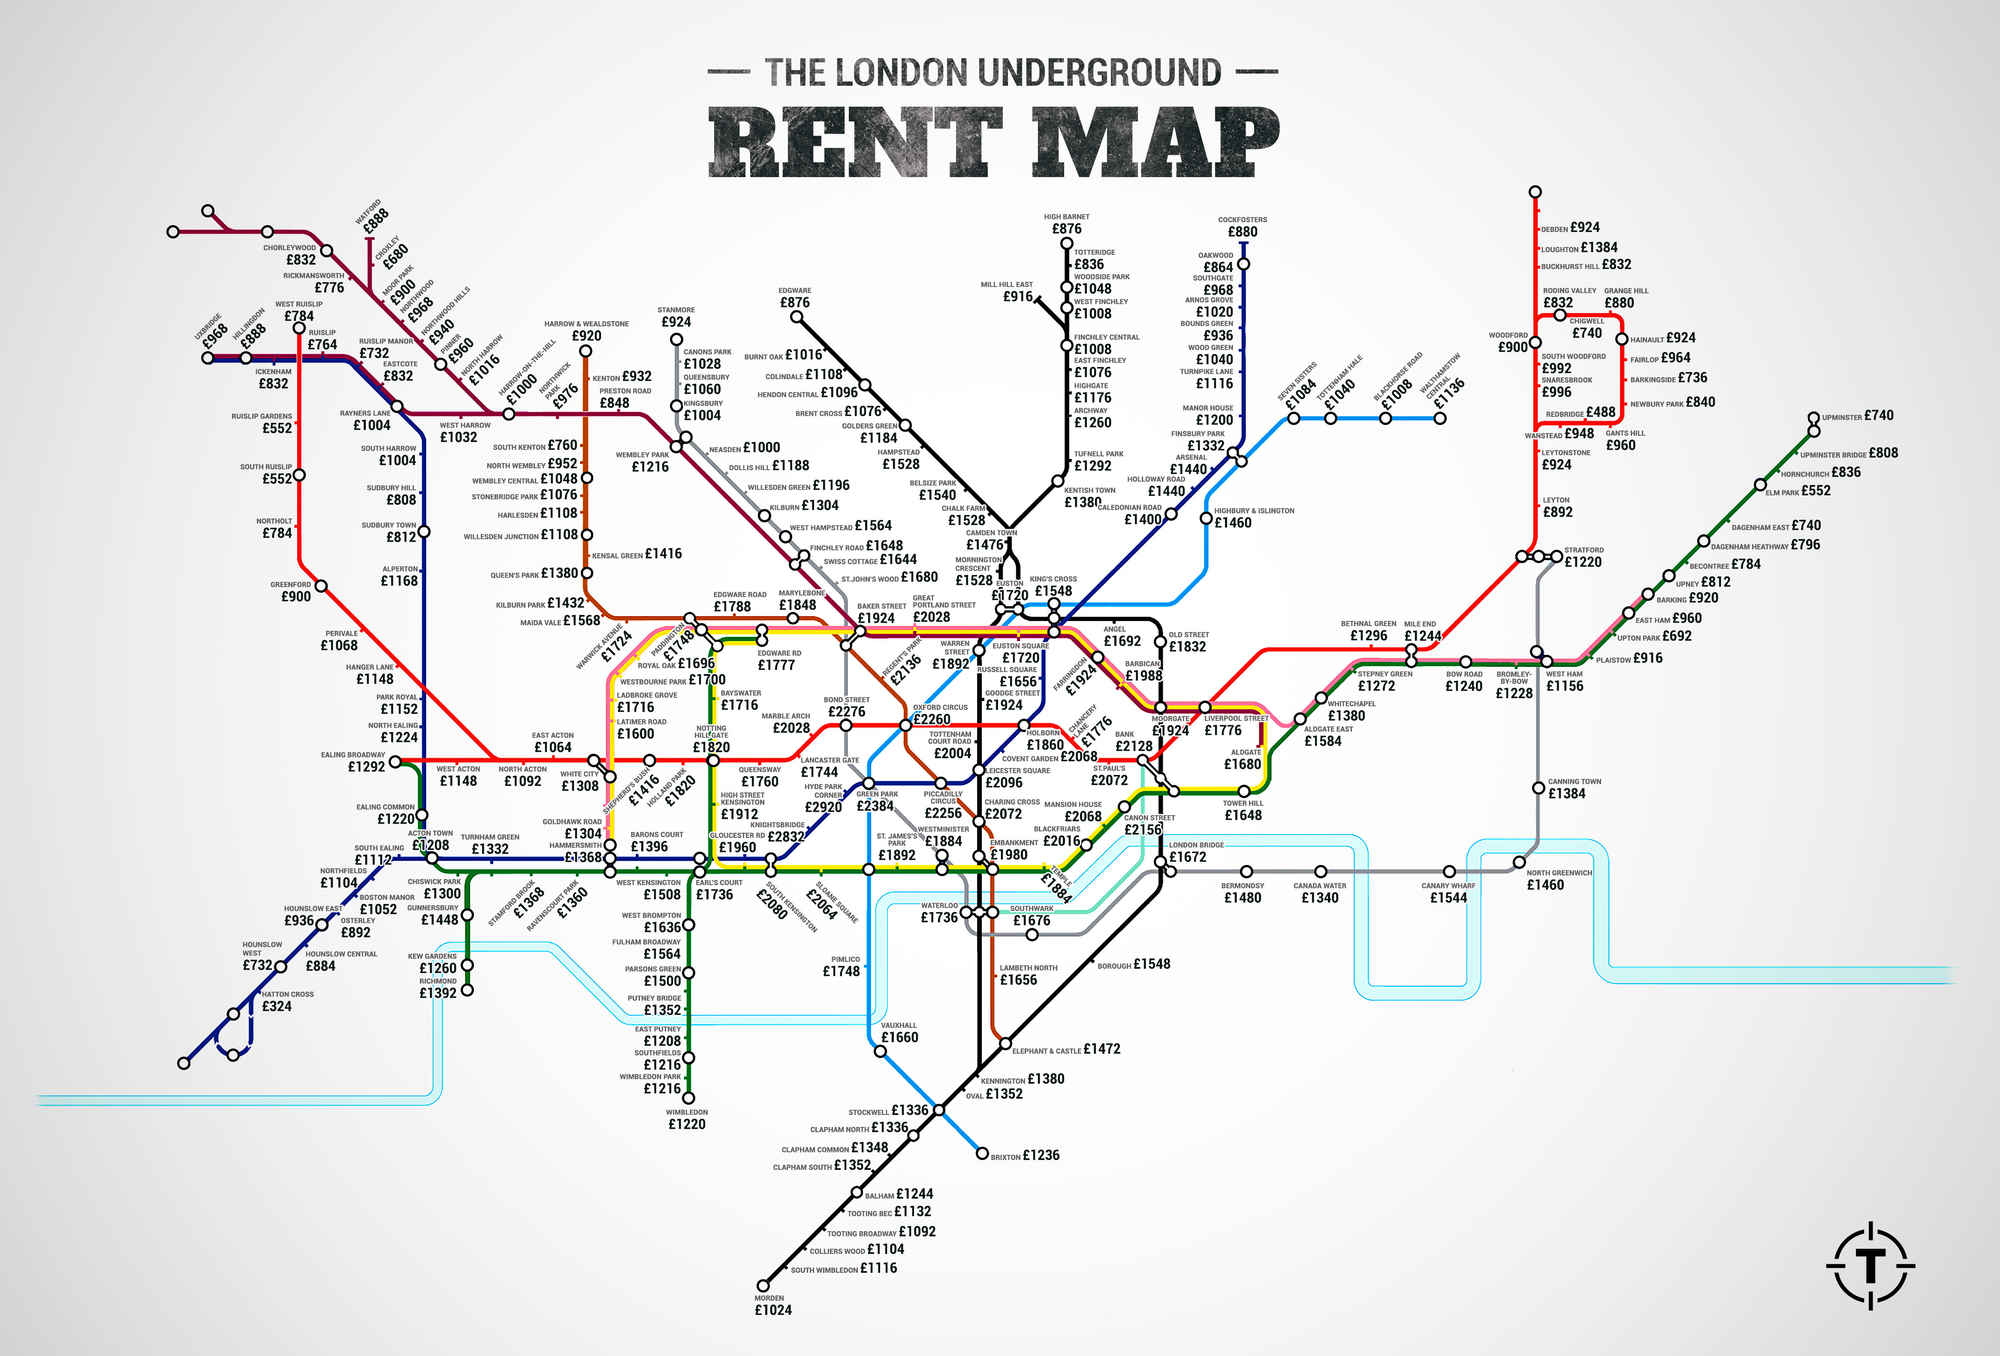 Tube-map labelled with one-bedroom flat rental rates / Boing Boing